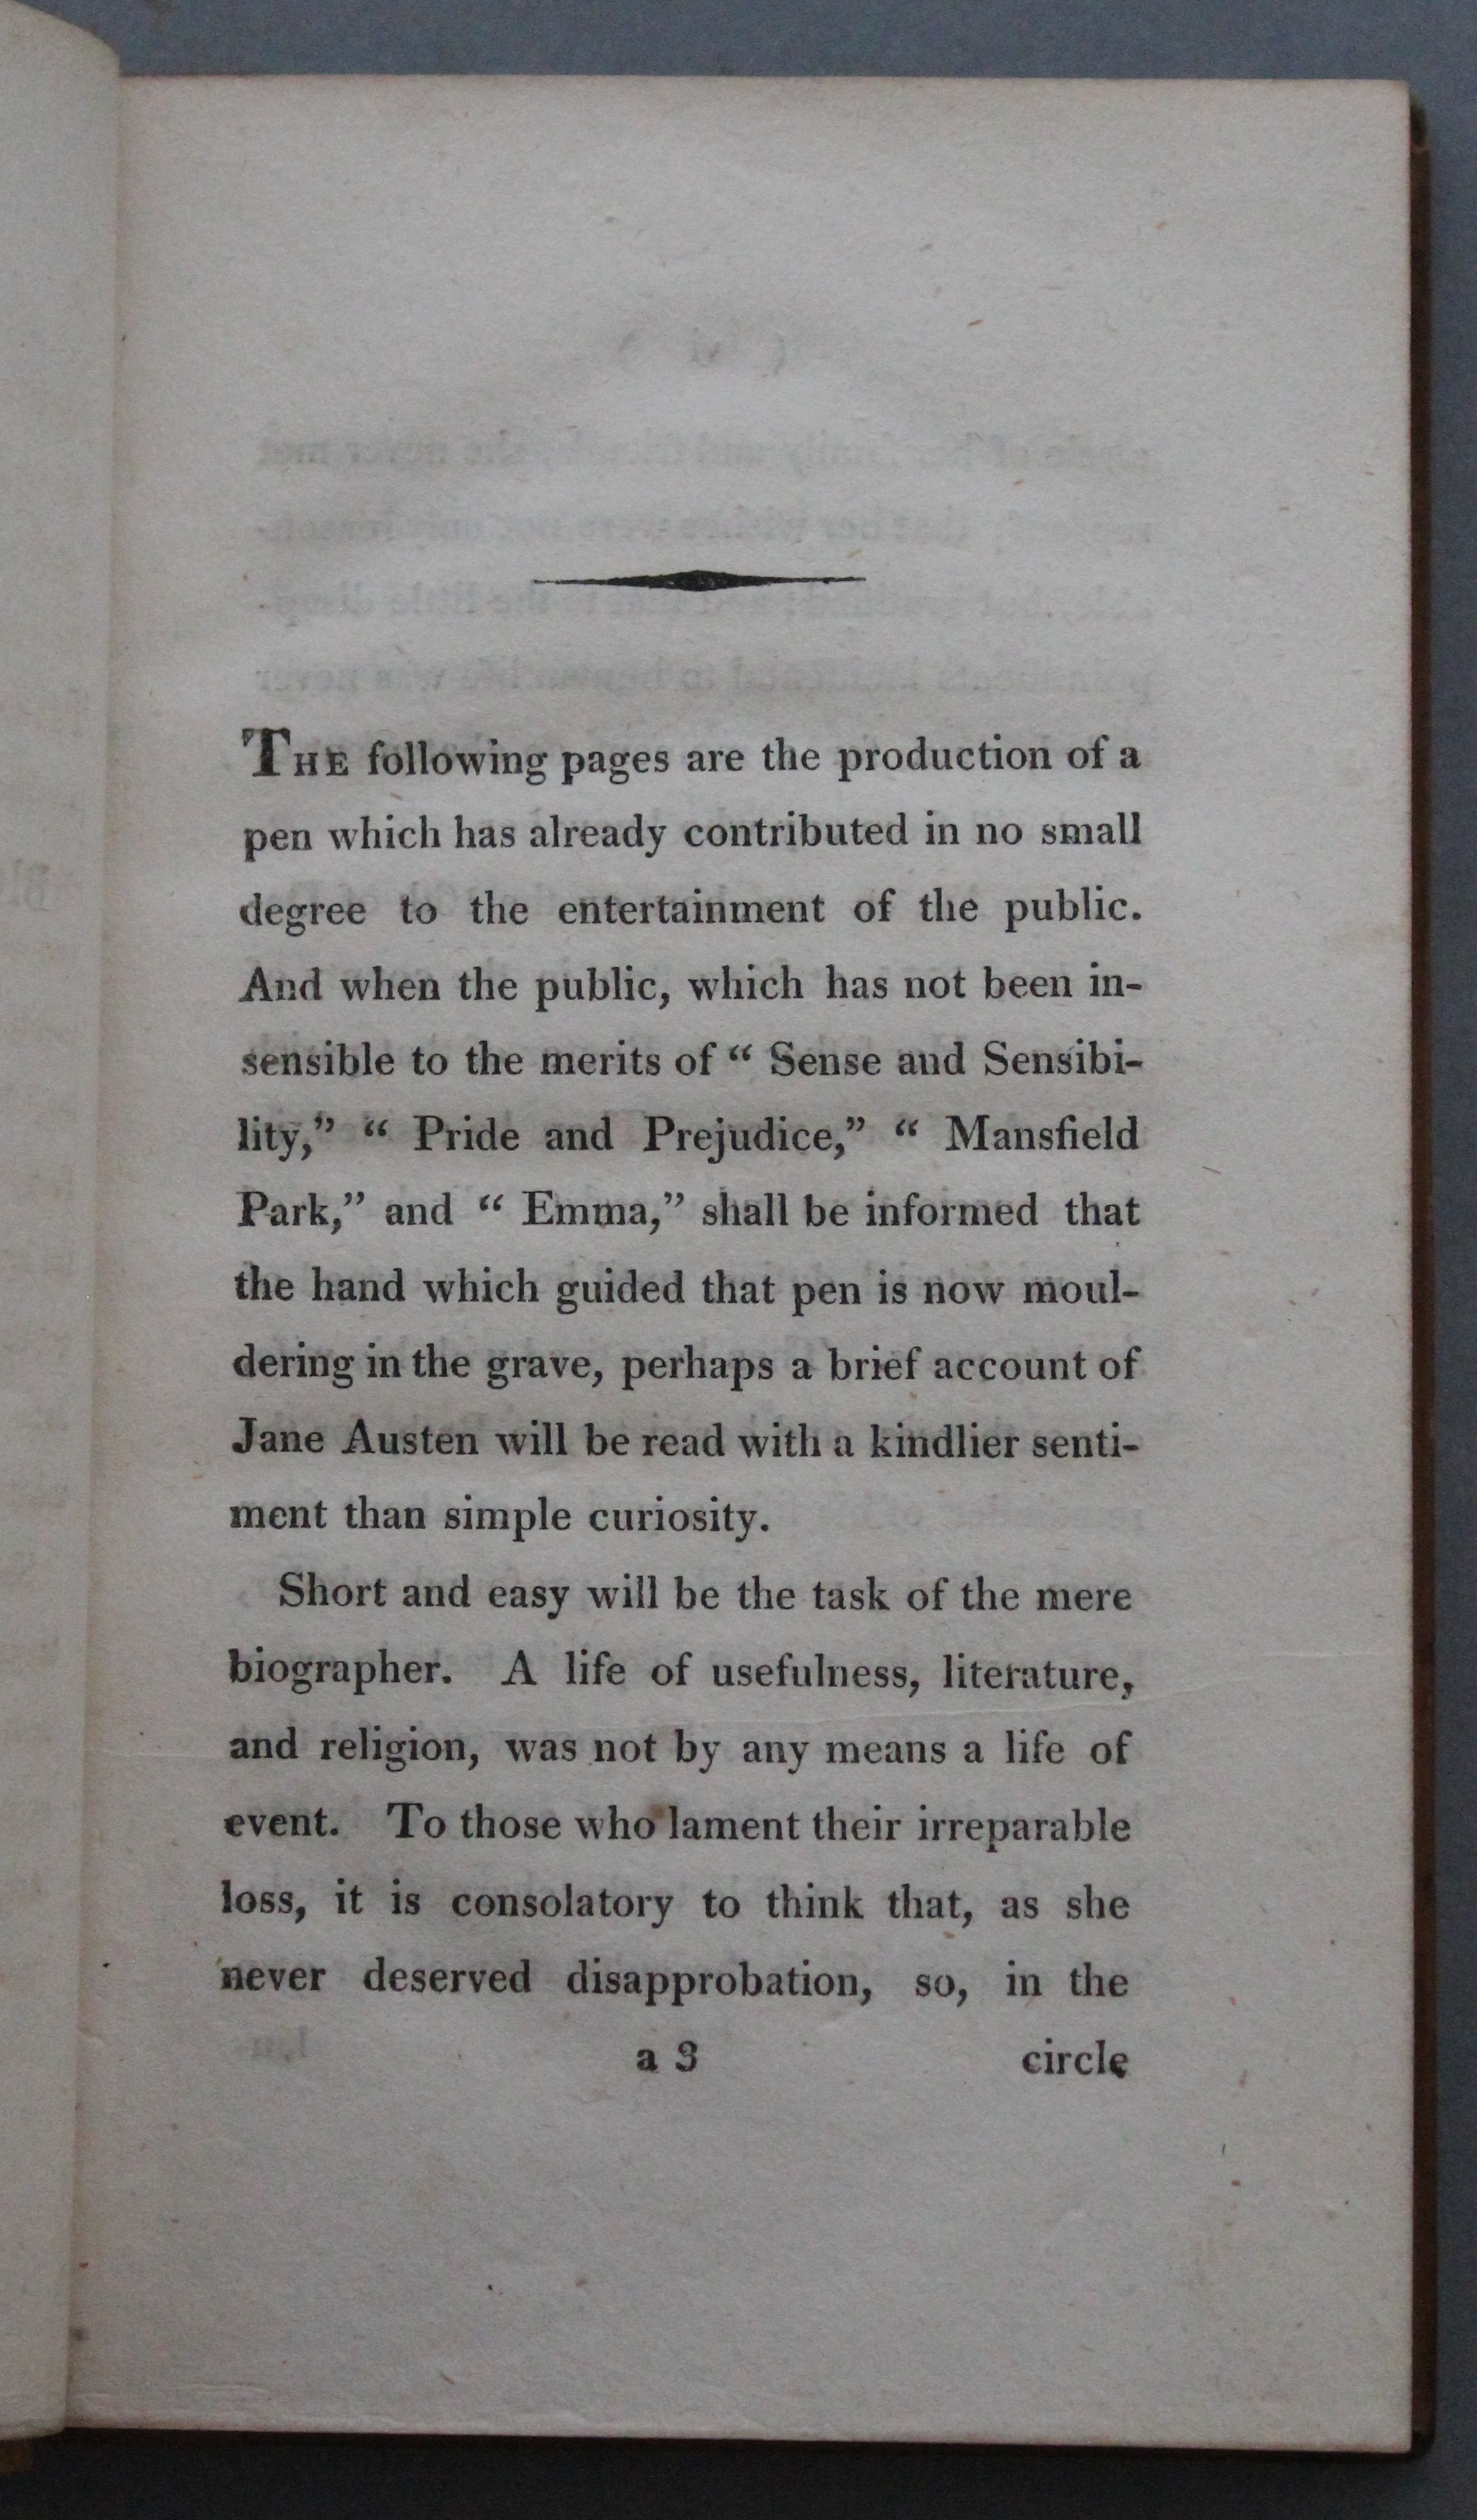 Thackeray.J.57.13 biographical note opening